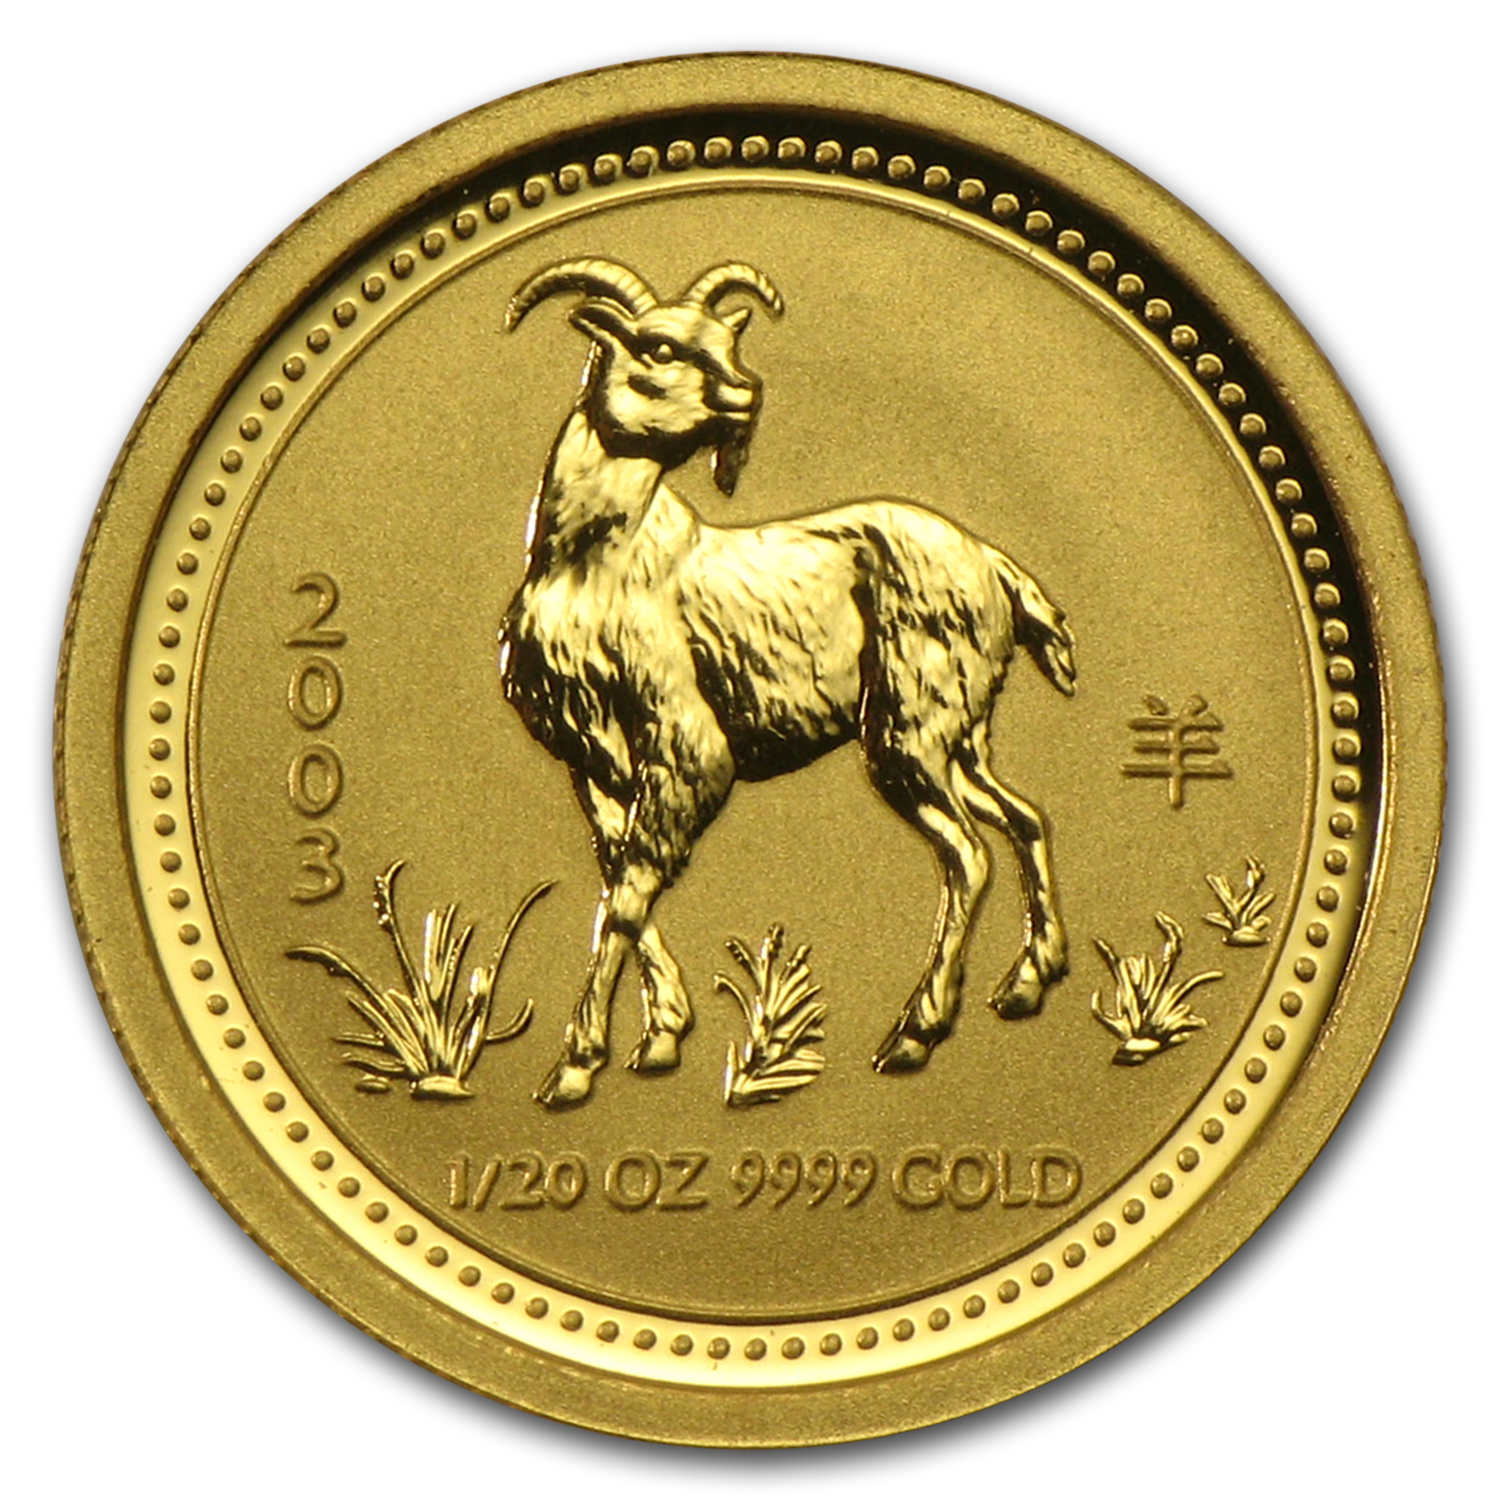 2003 1/20 oz Gold Lunar Year of the Goat BU (Series I)